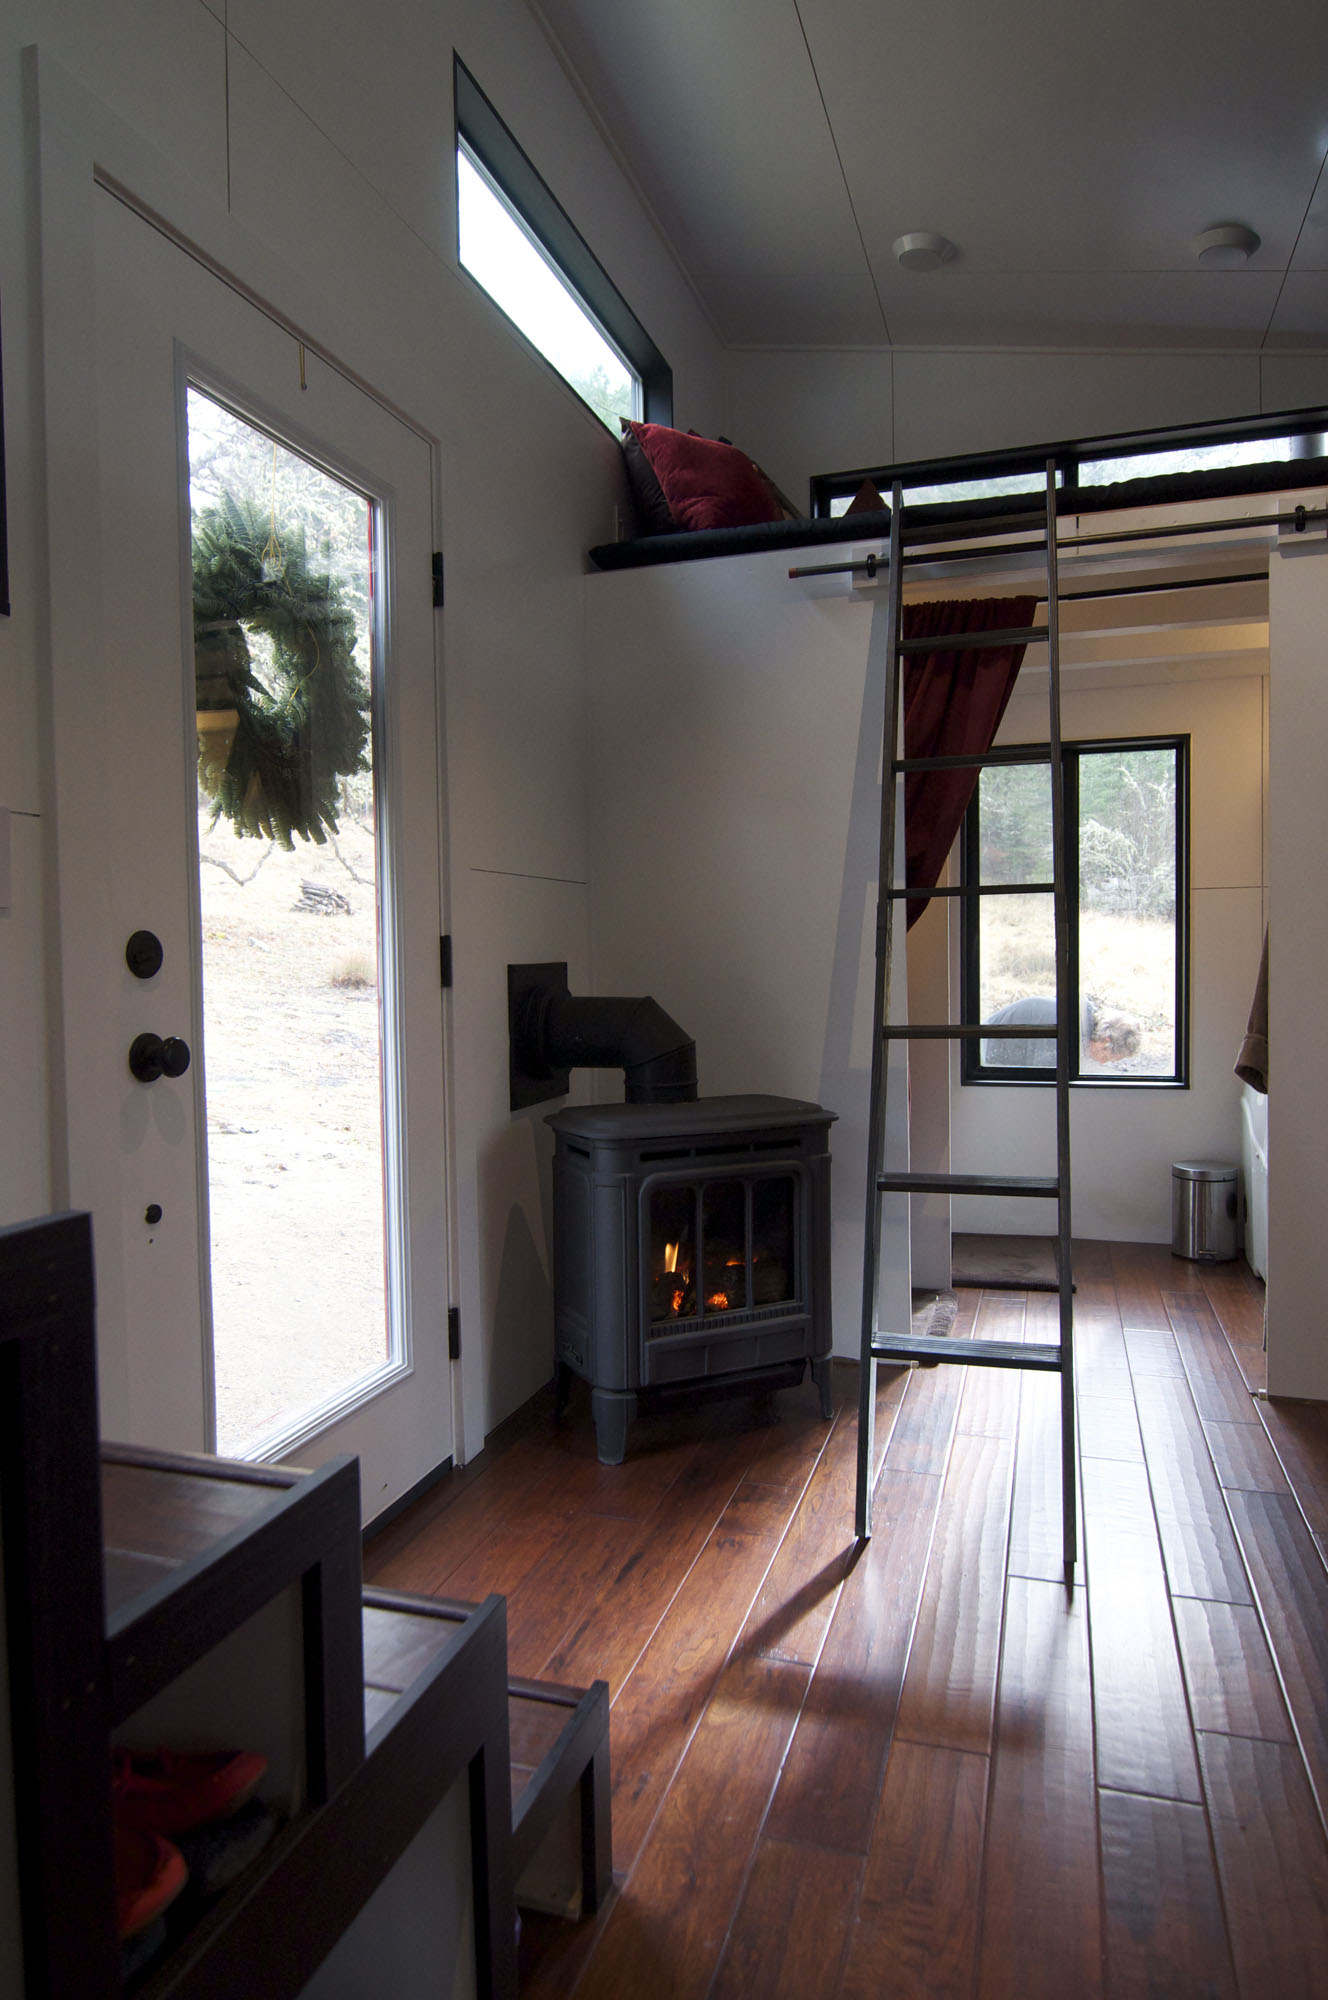 Gas Fire, Tiny House on Wheels